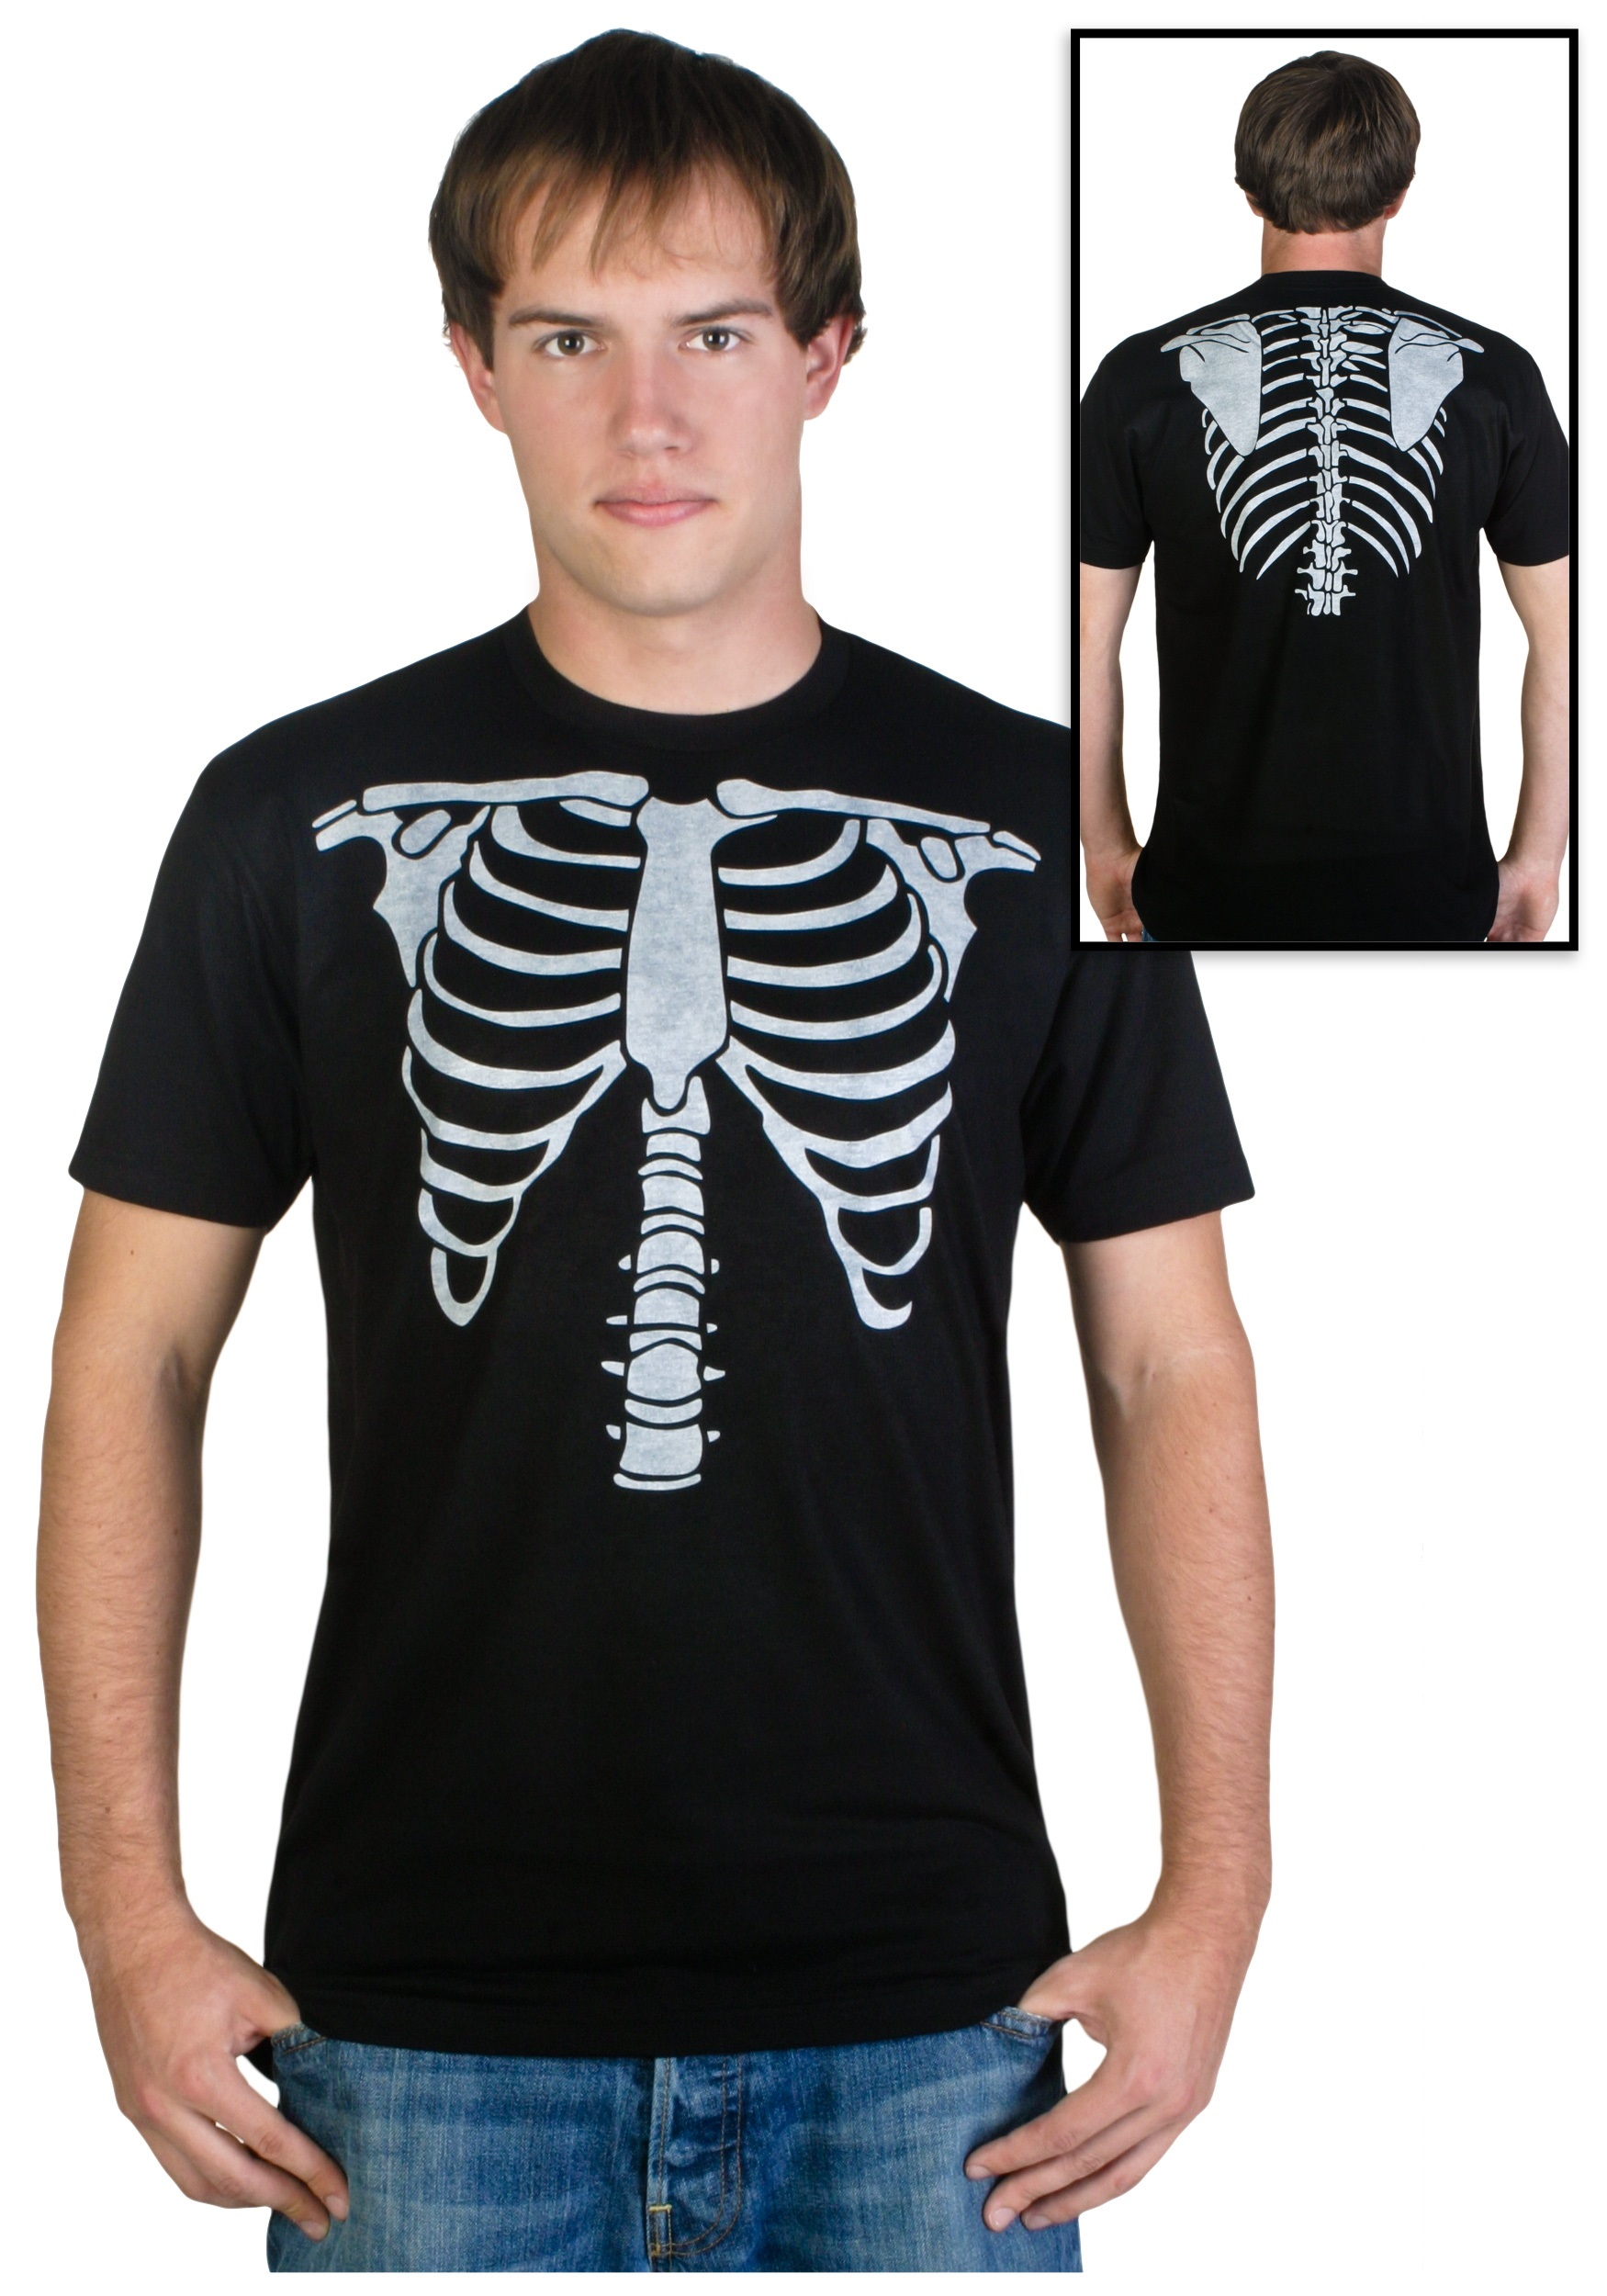 Mens Skeleton Costume T-Shirt  sc 1 st  Halloween Costumes & Mens Skeleton Costume T-Shirt - Halloween Costumes